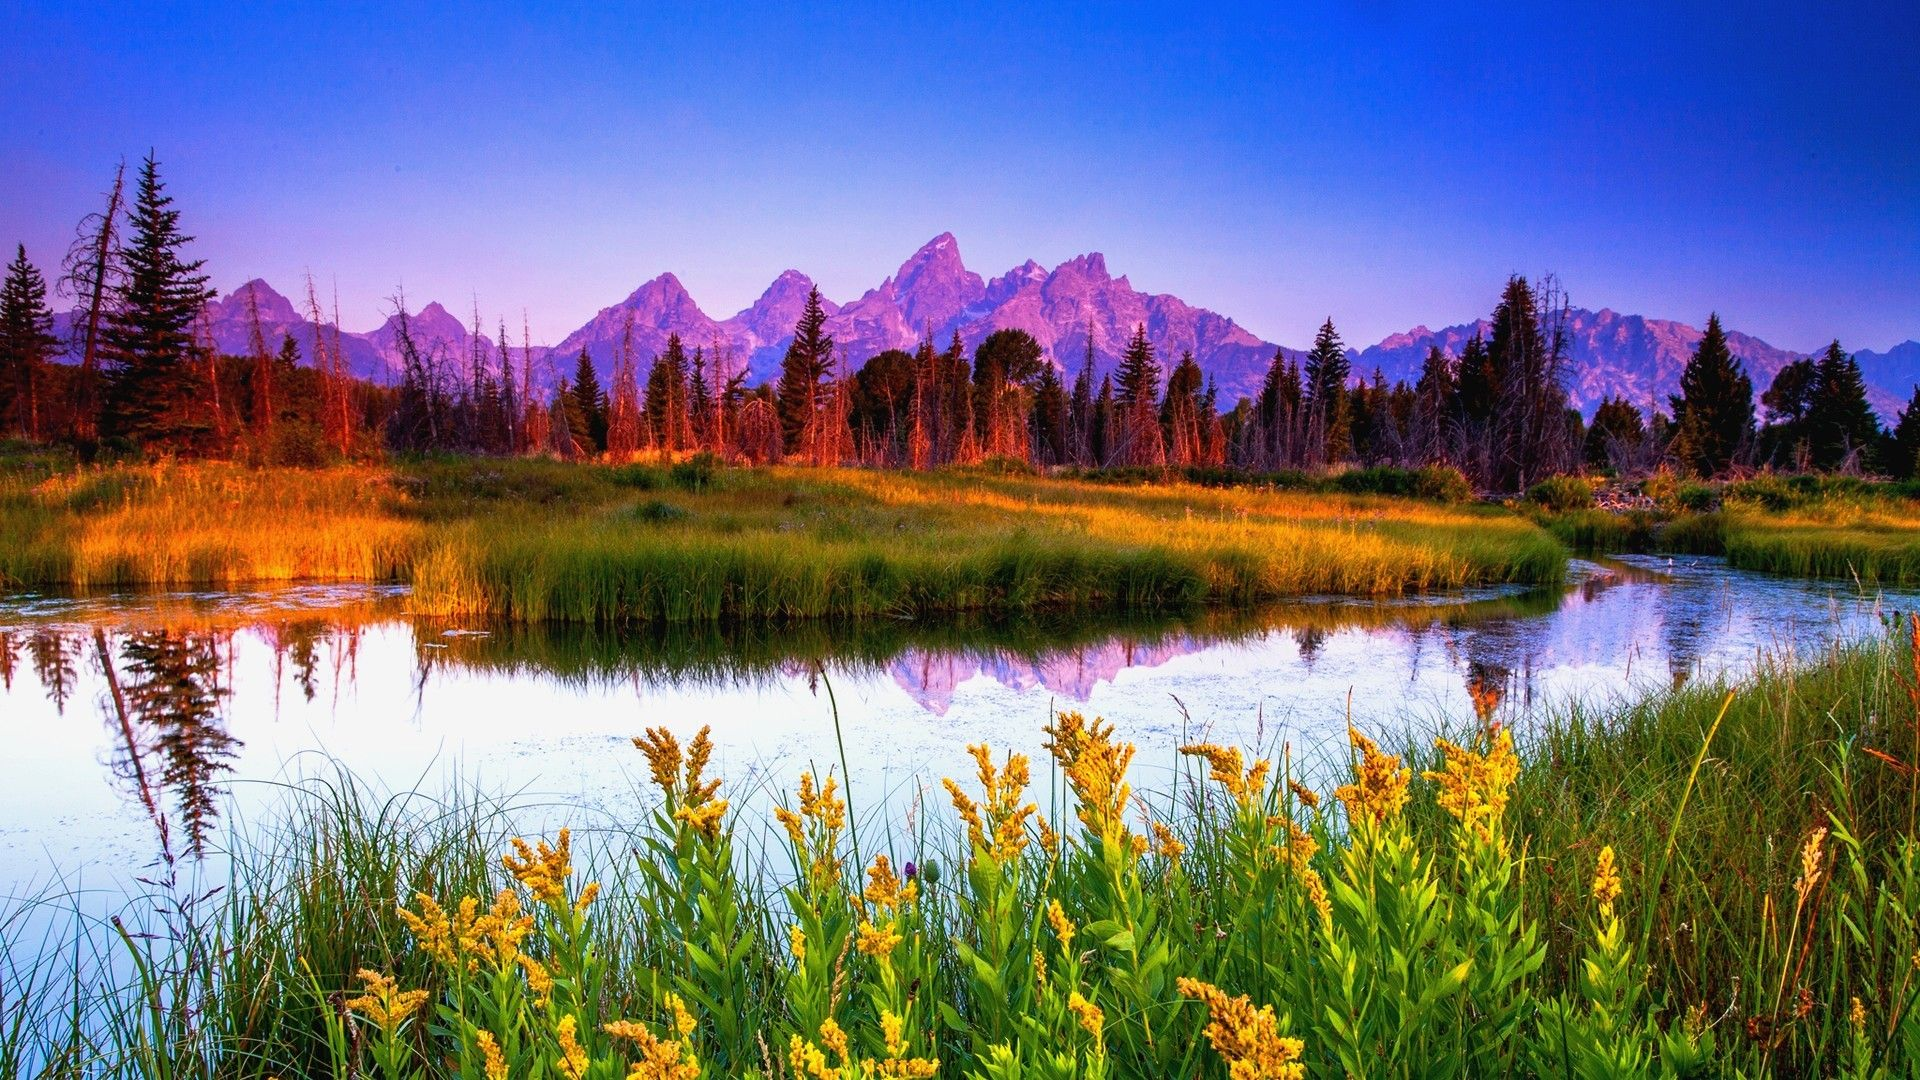 Summer Mountain Wallpapers - Top Free